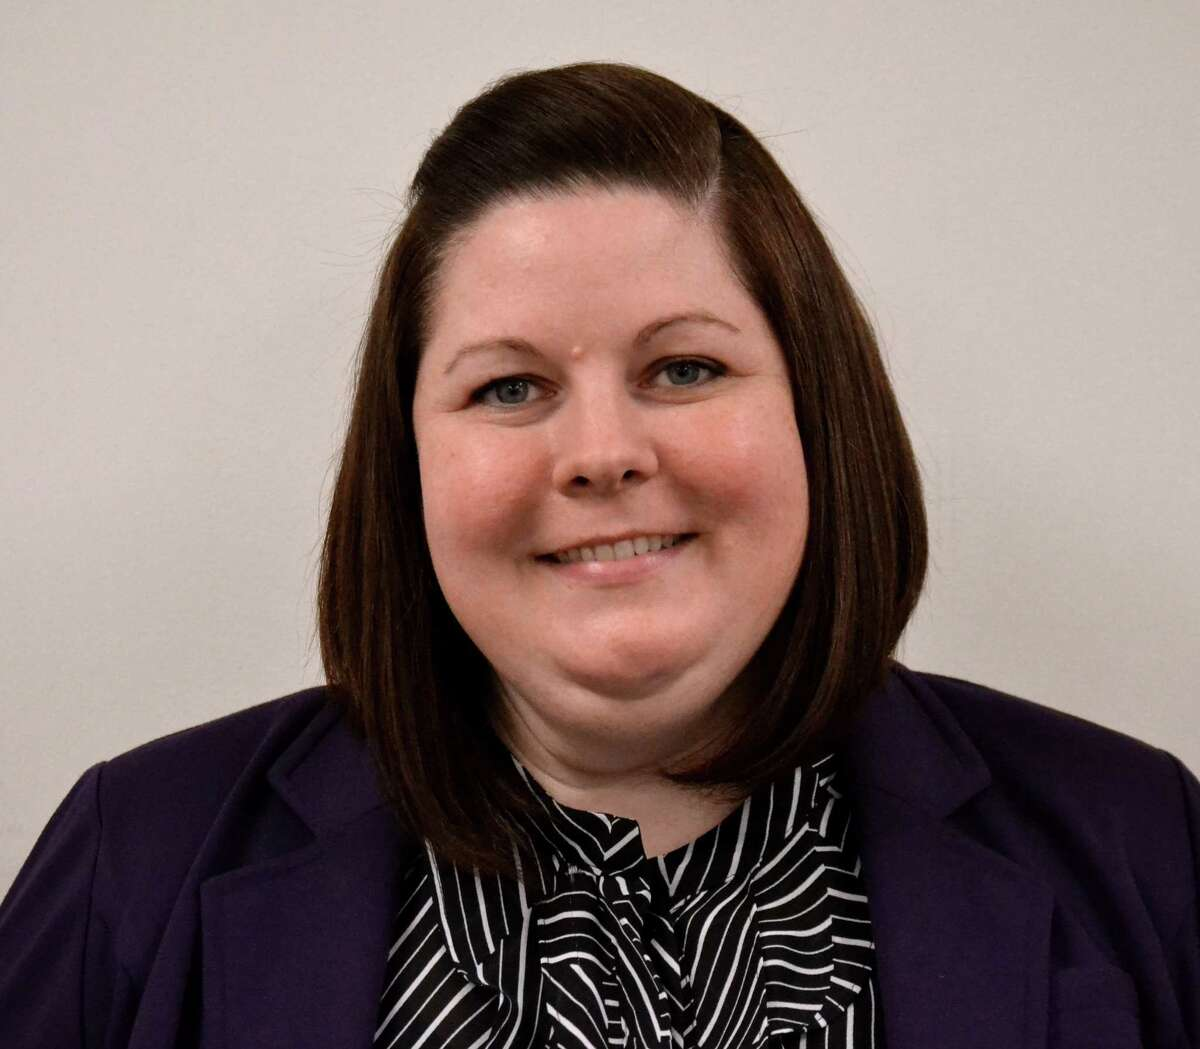 Greenwich Public Schools Coordinator of K-12 Humanities Lori Elliott will be leaving the district effective July 1 for a position at Cooperative Educational Services.